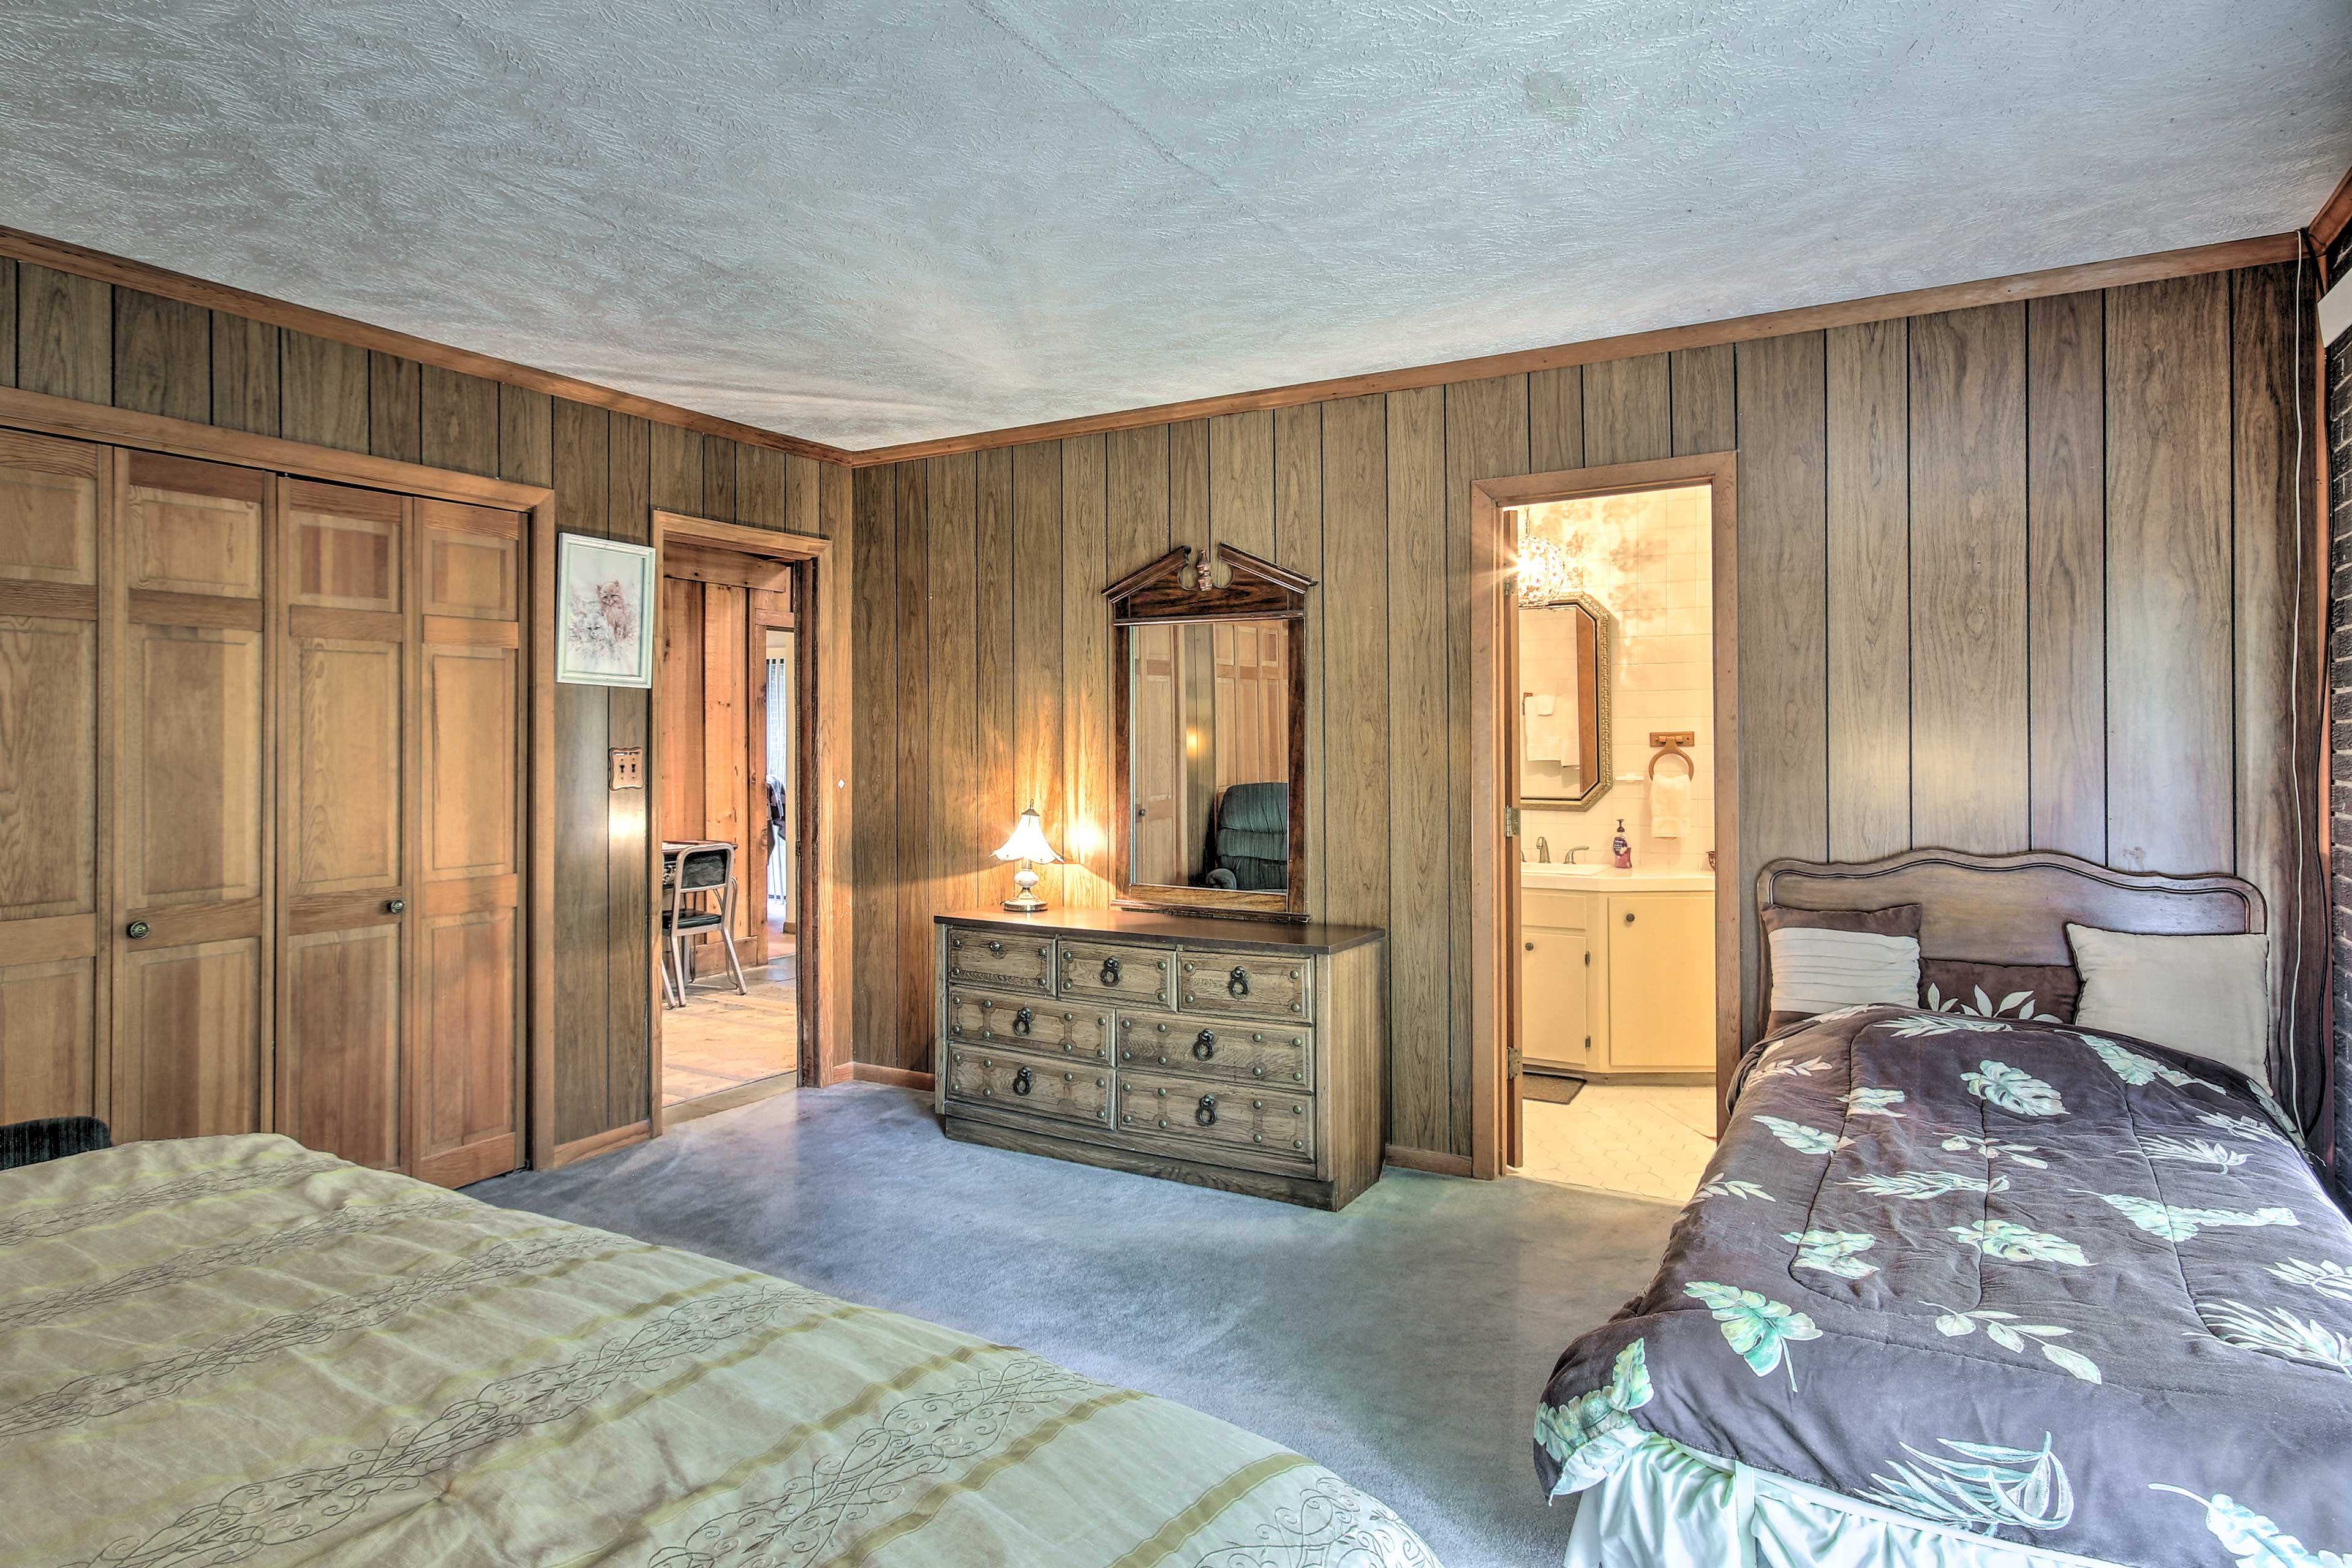 There's also a twin bed making this room great for families.